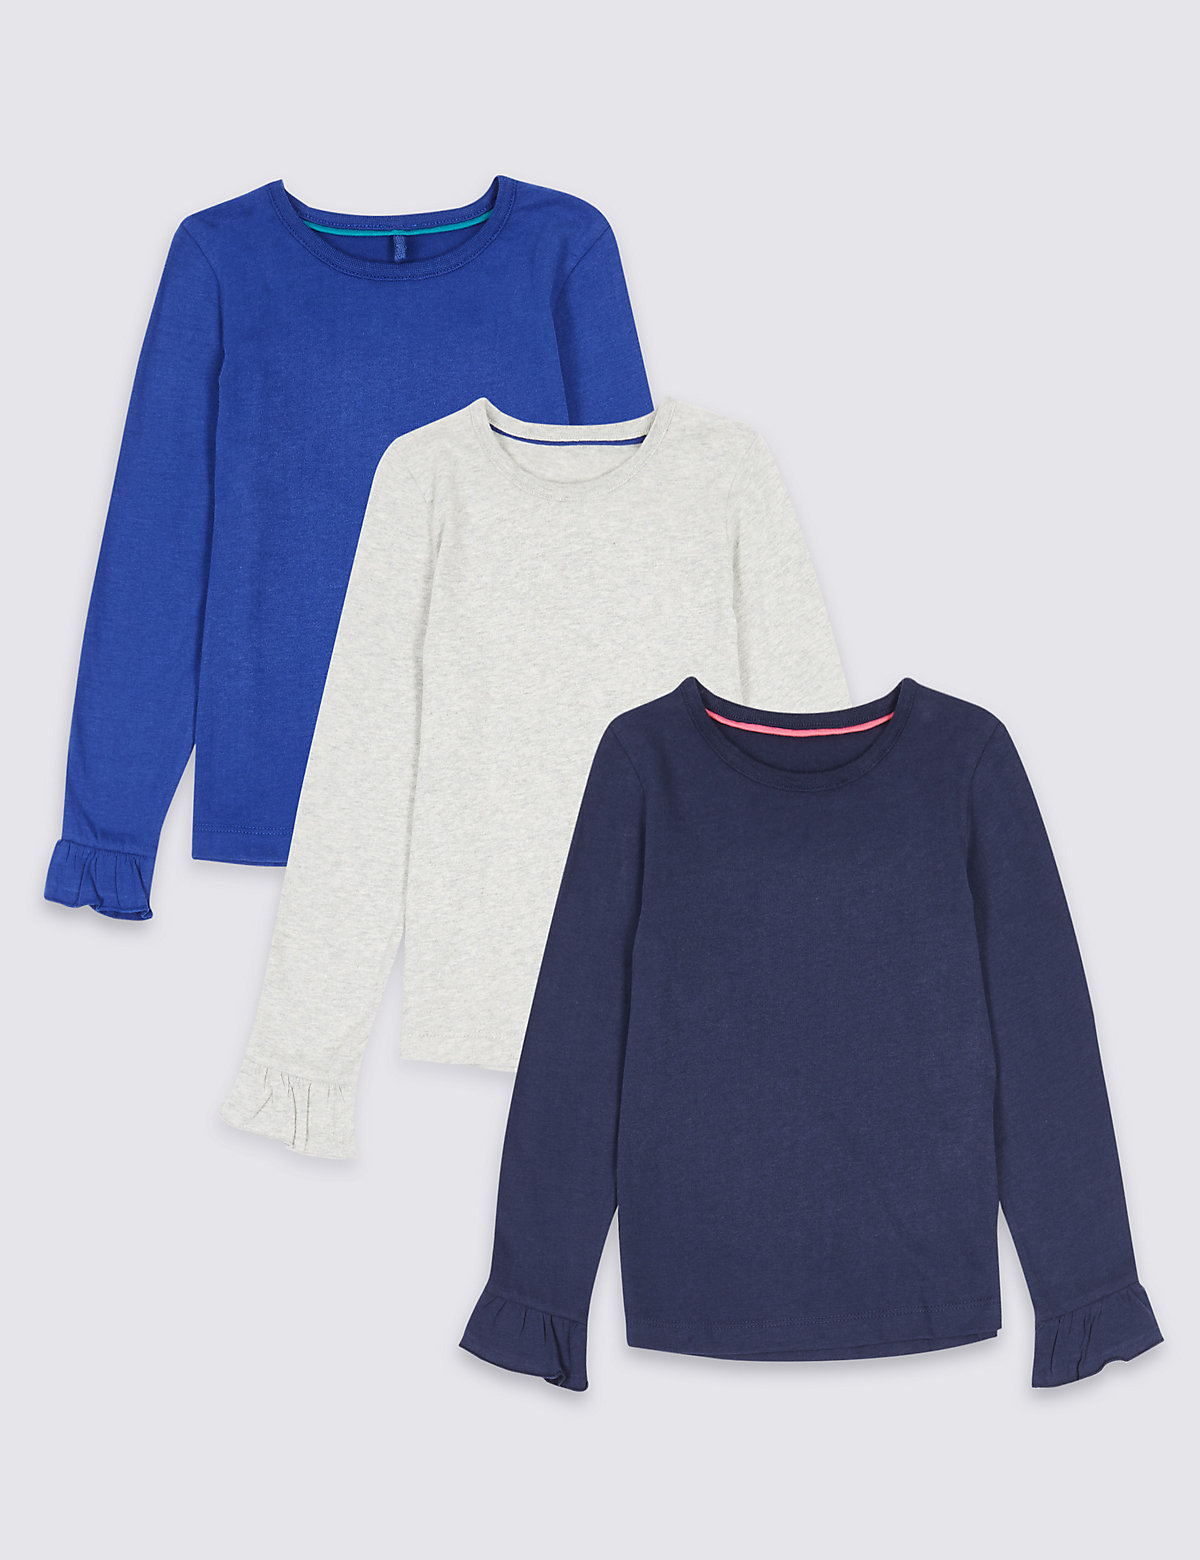 3 Pack Pure Cotton Tops (3 Months - 6 Years)